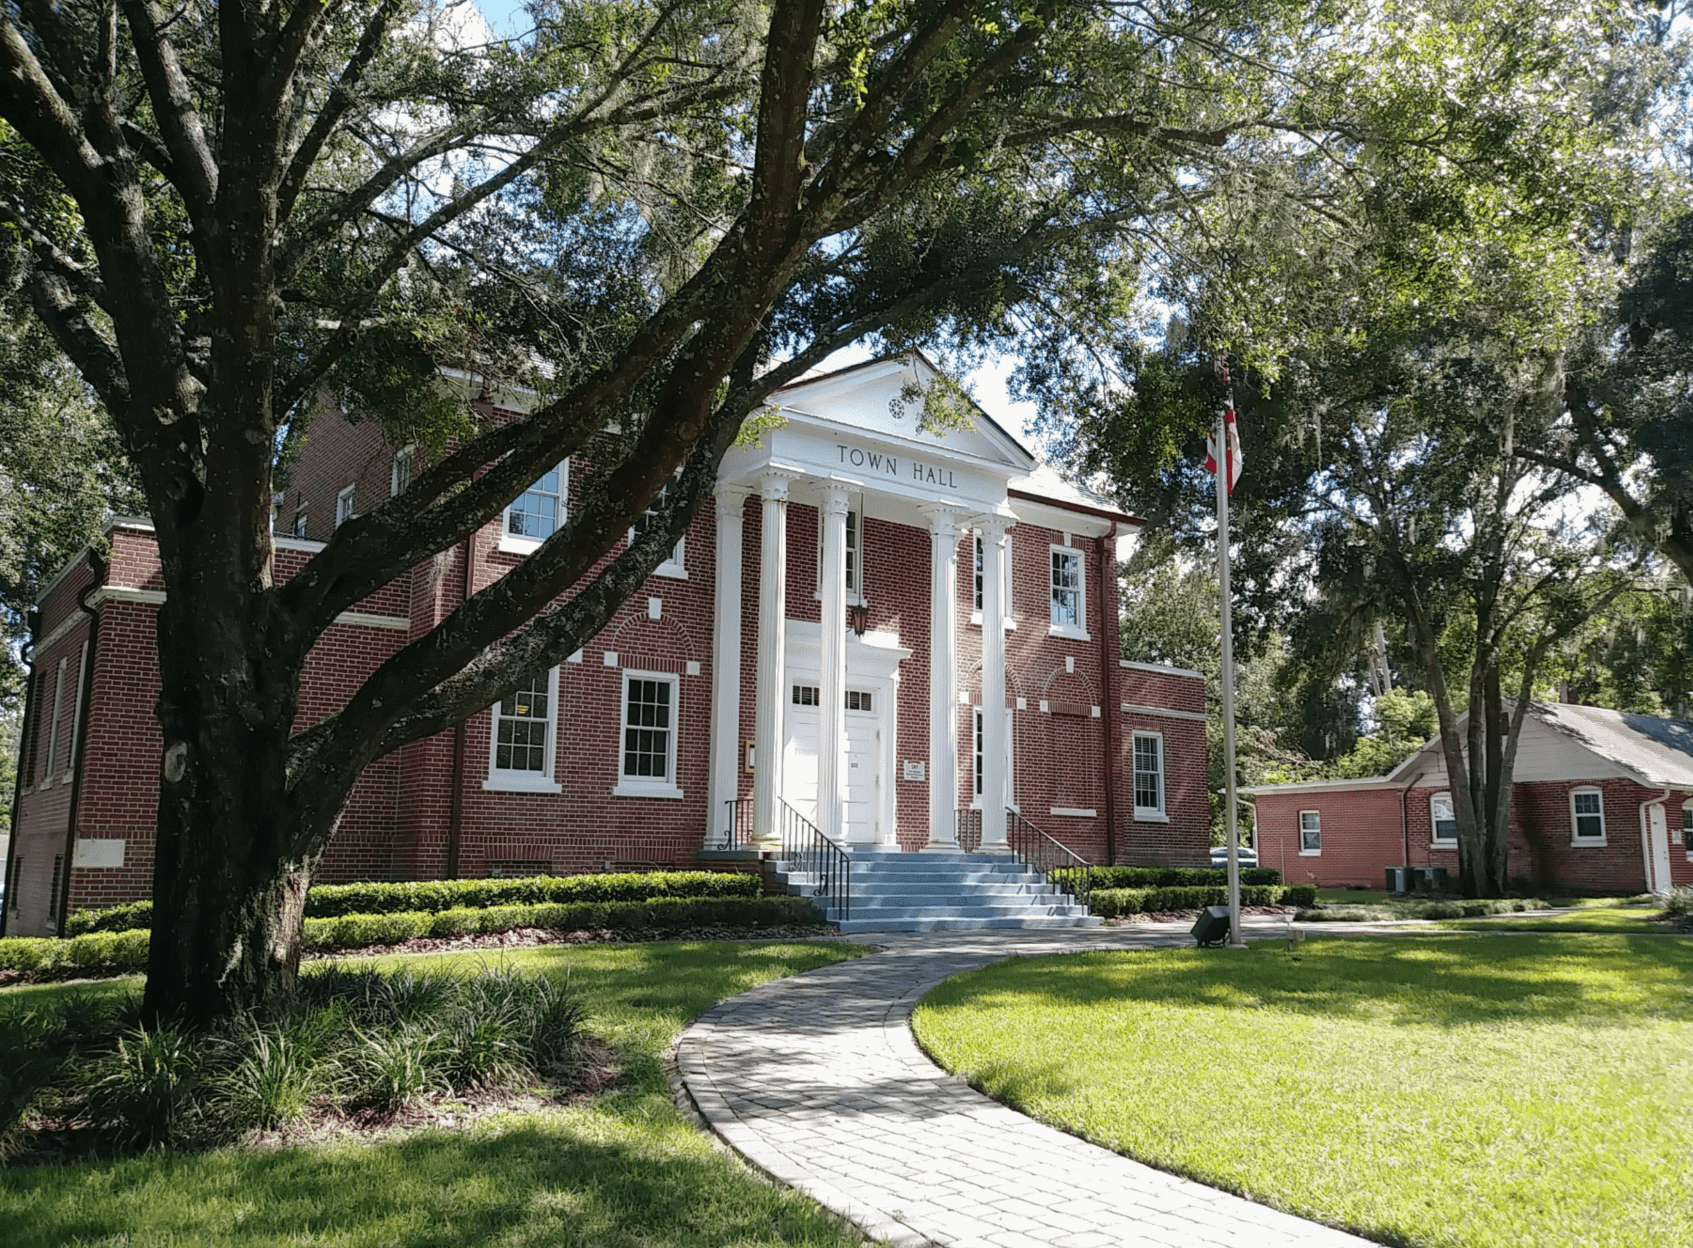 Orange City Town Hall - South elevation, taken Sept 11, 2018 by Kim Reading